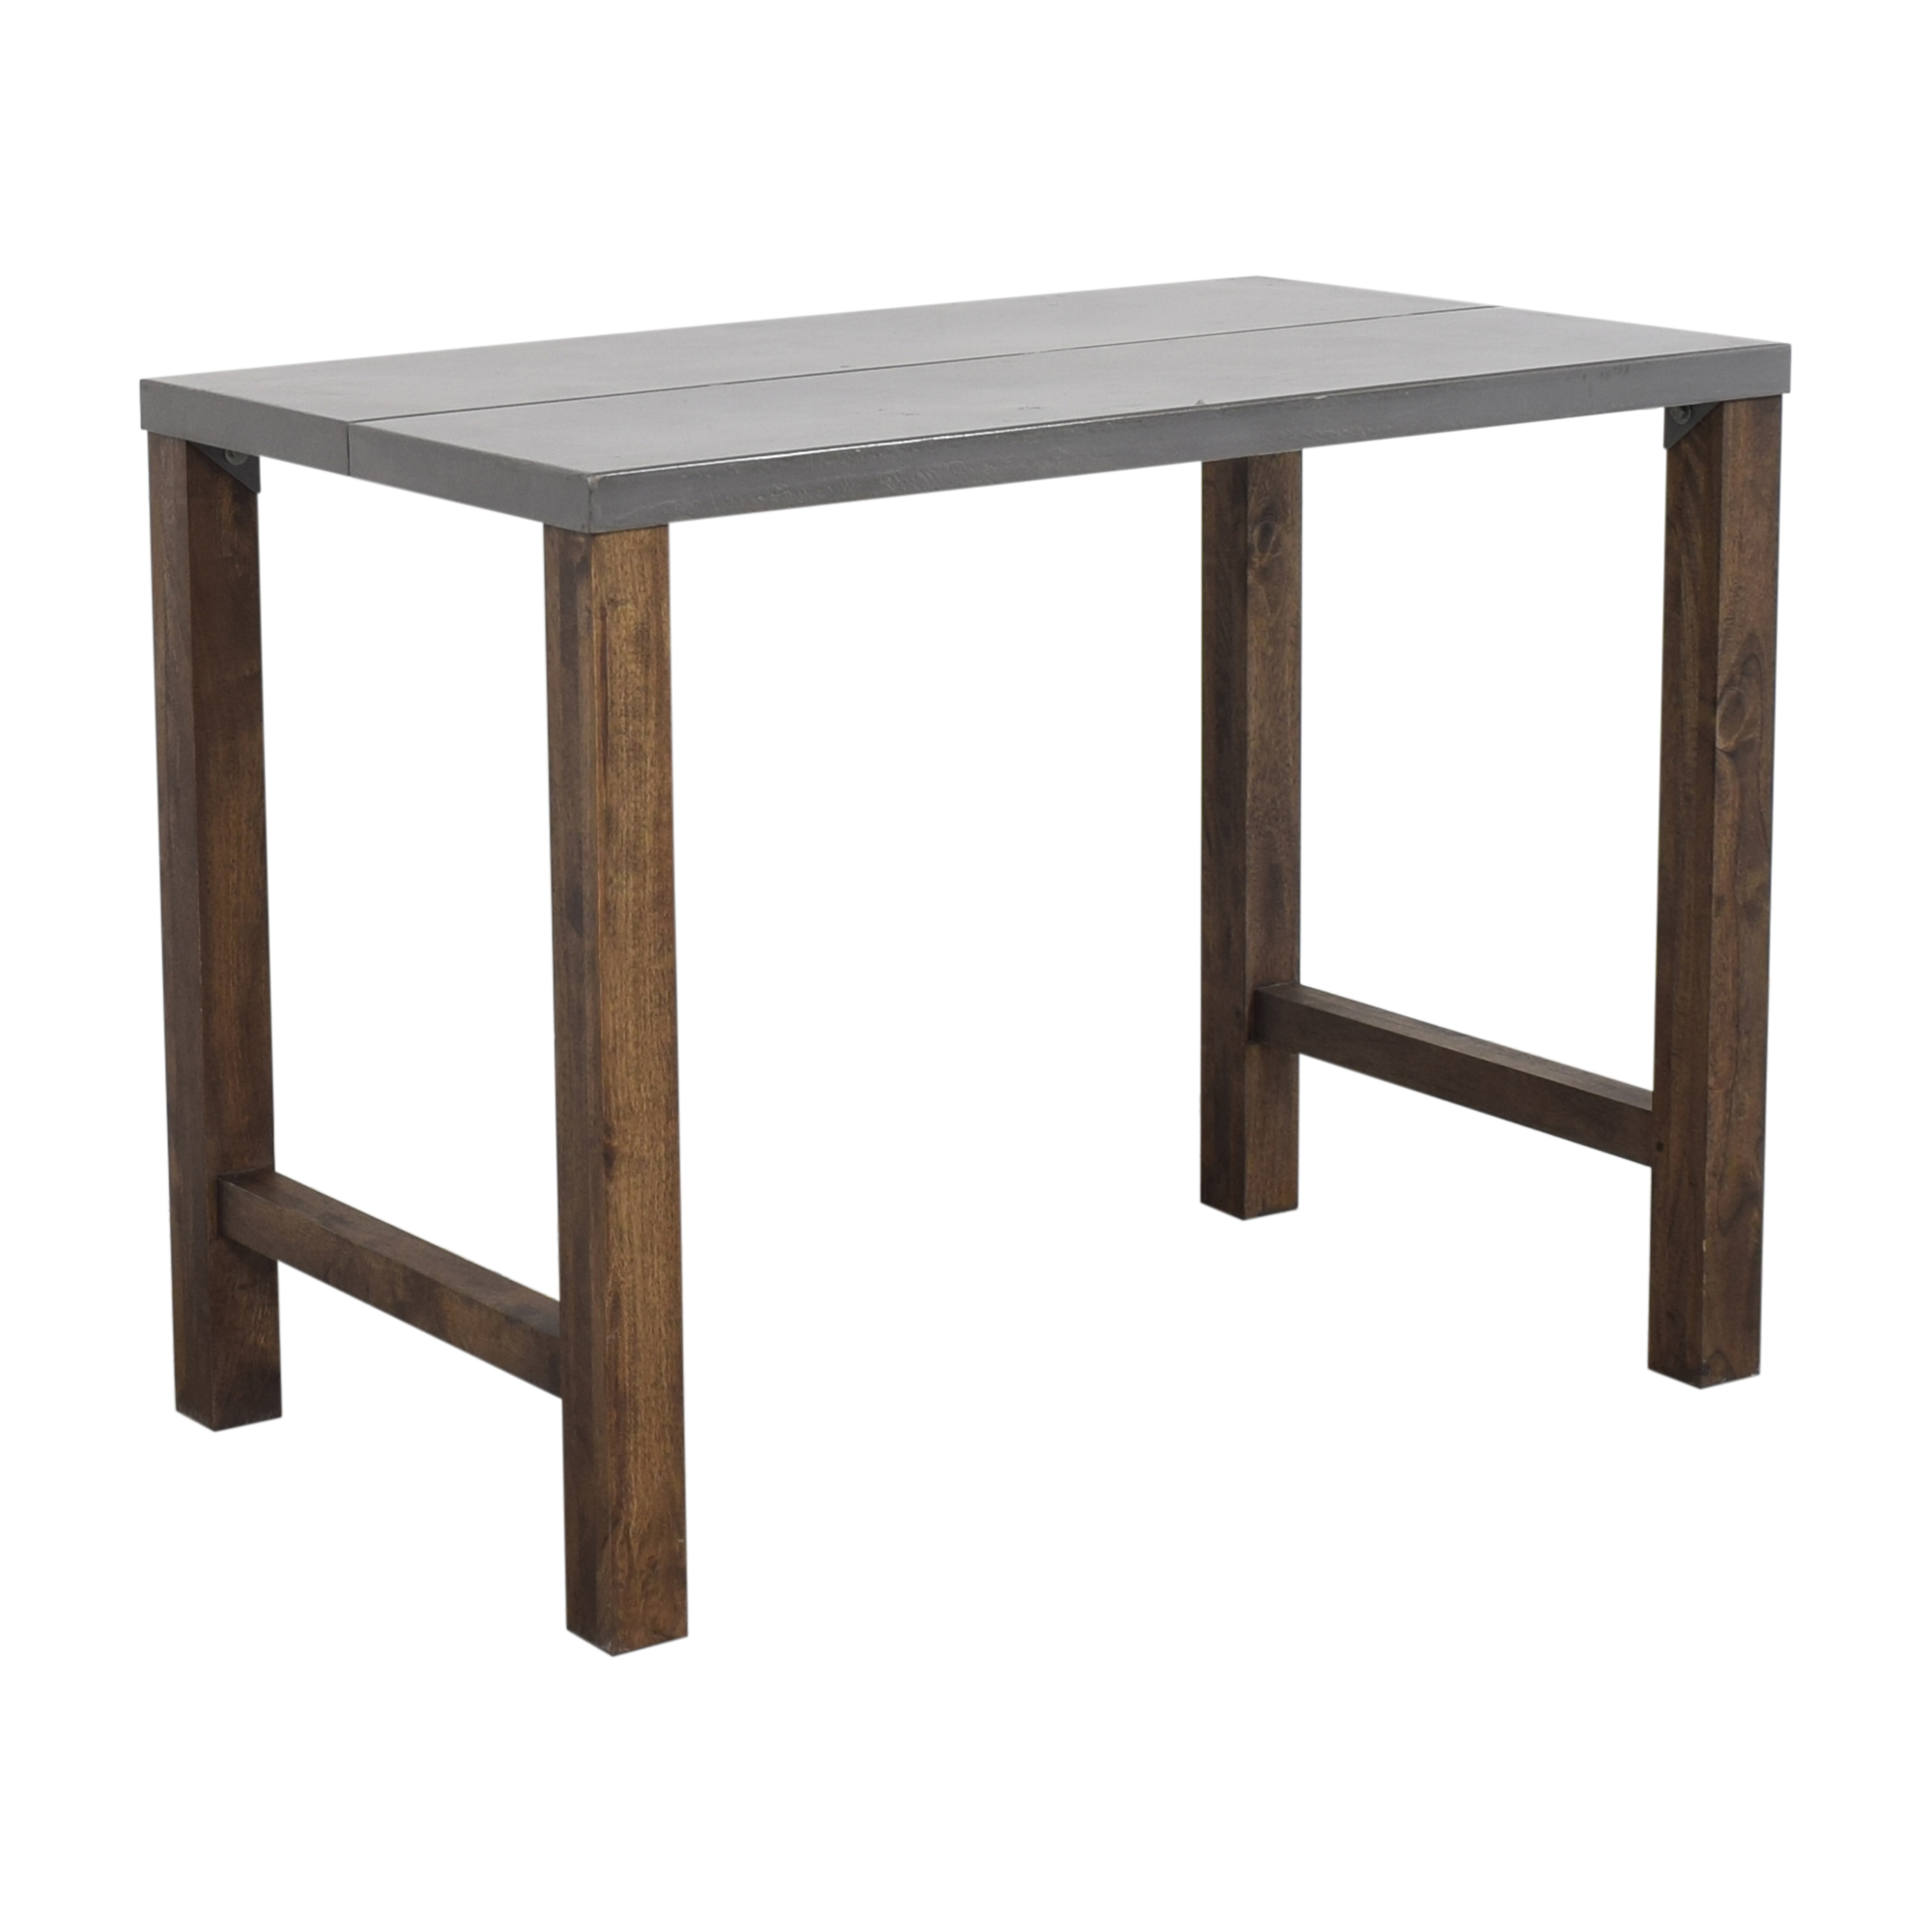 Crate & Barrel Crate & Barrel Counter Height Table Dinner Tables